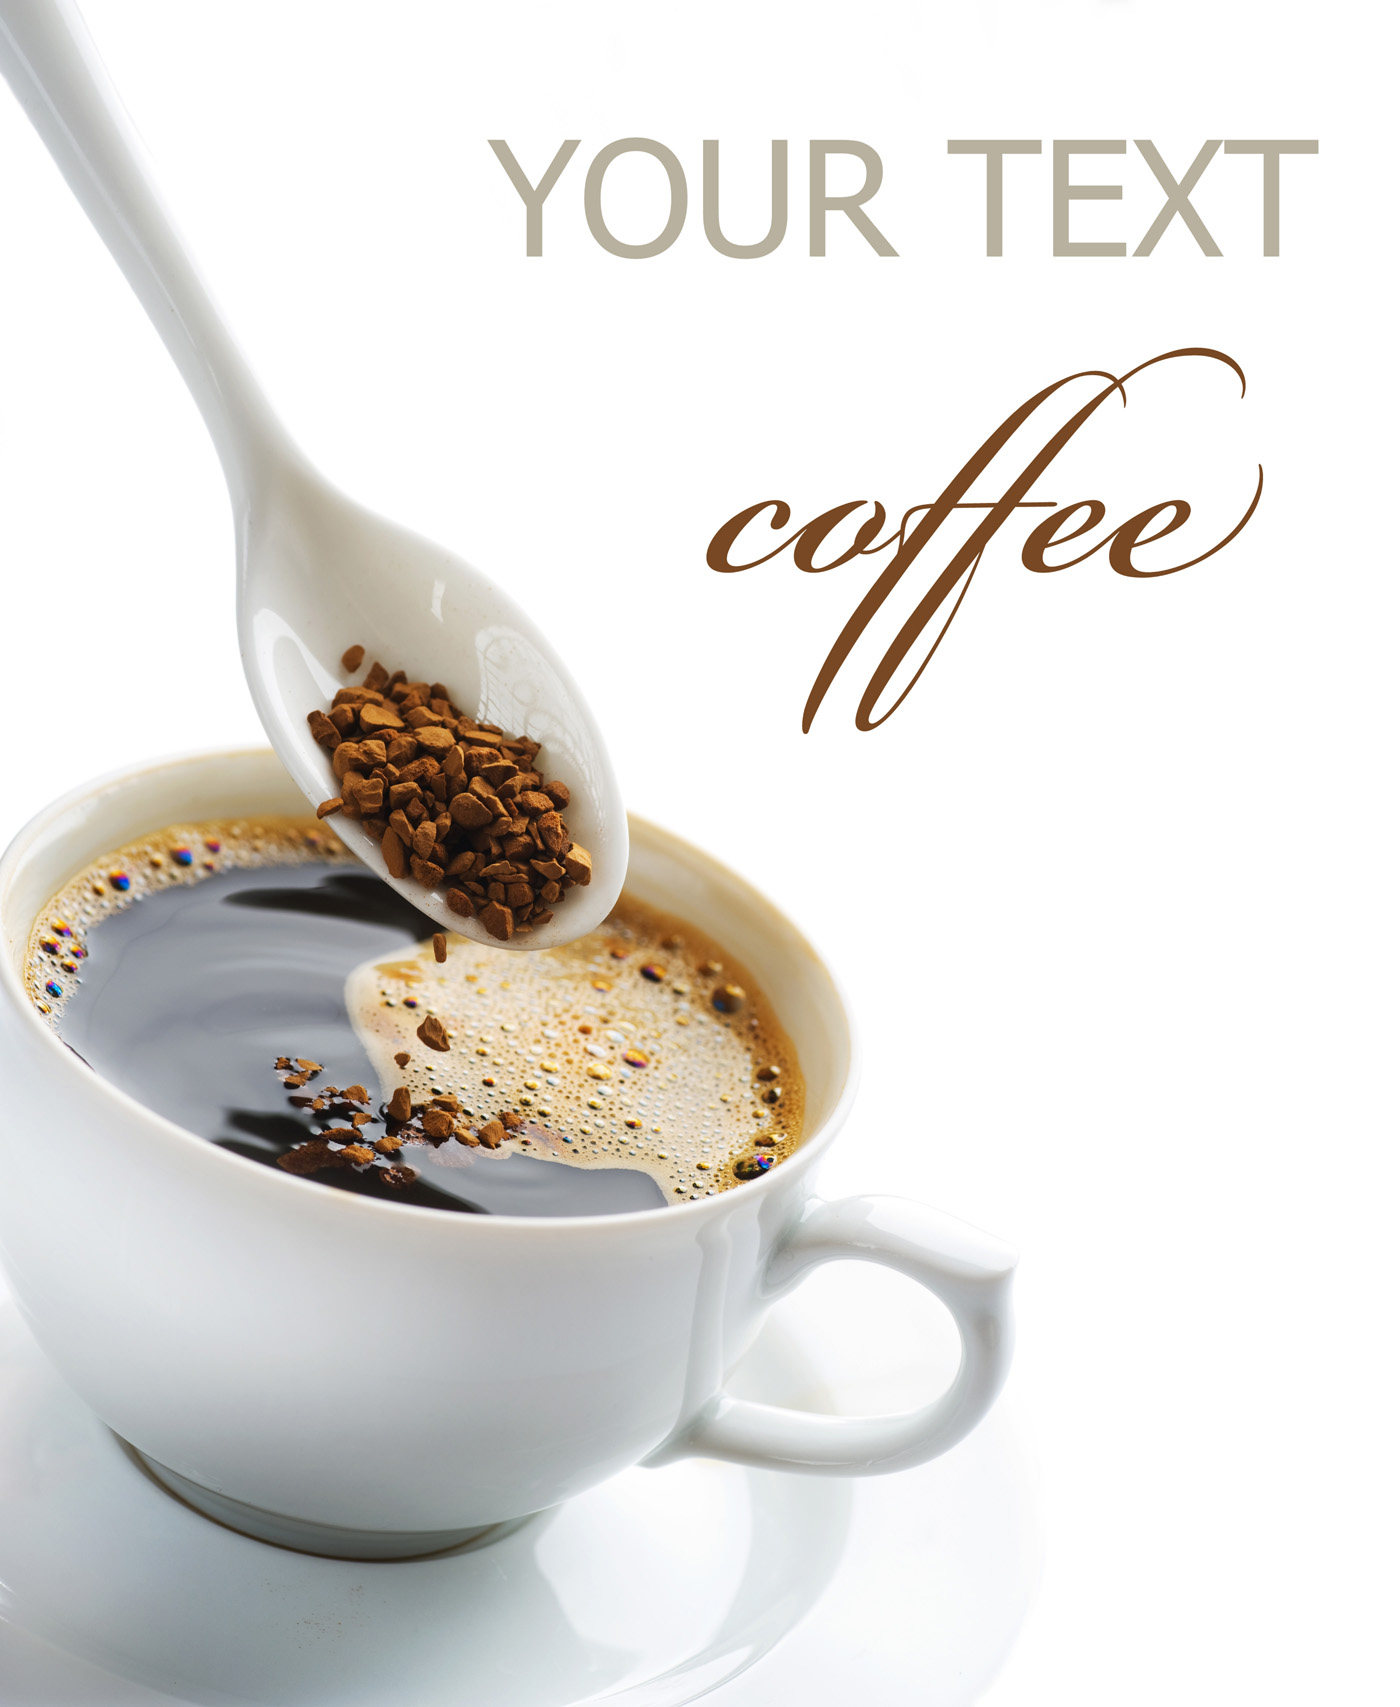 High-resolution images of coffee 17286